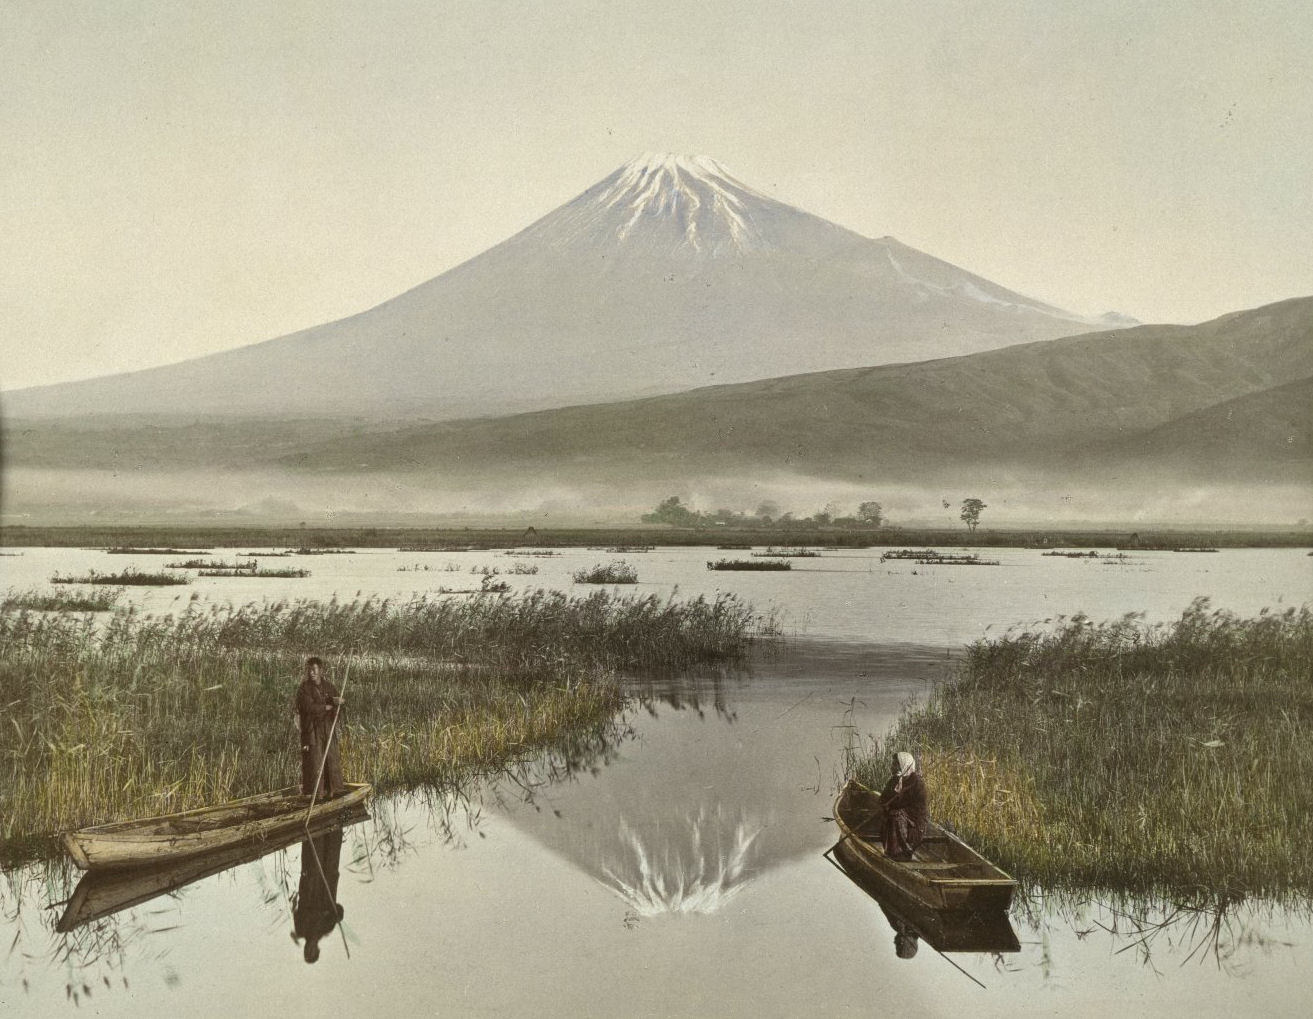 Tinted photograph of Mount Fuji